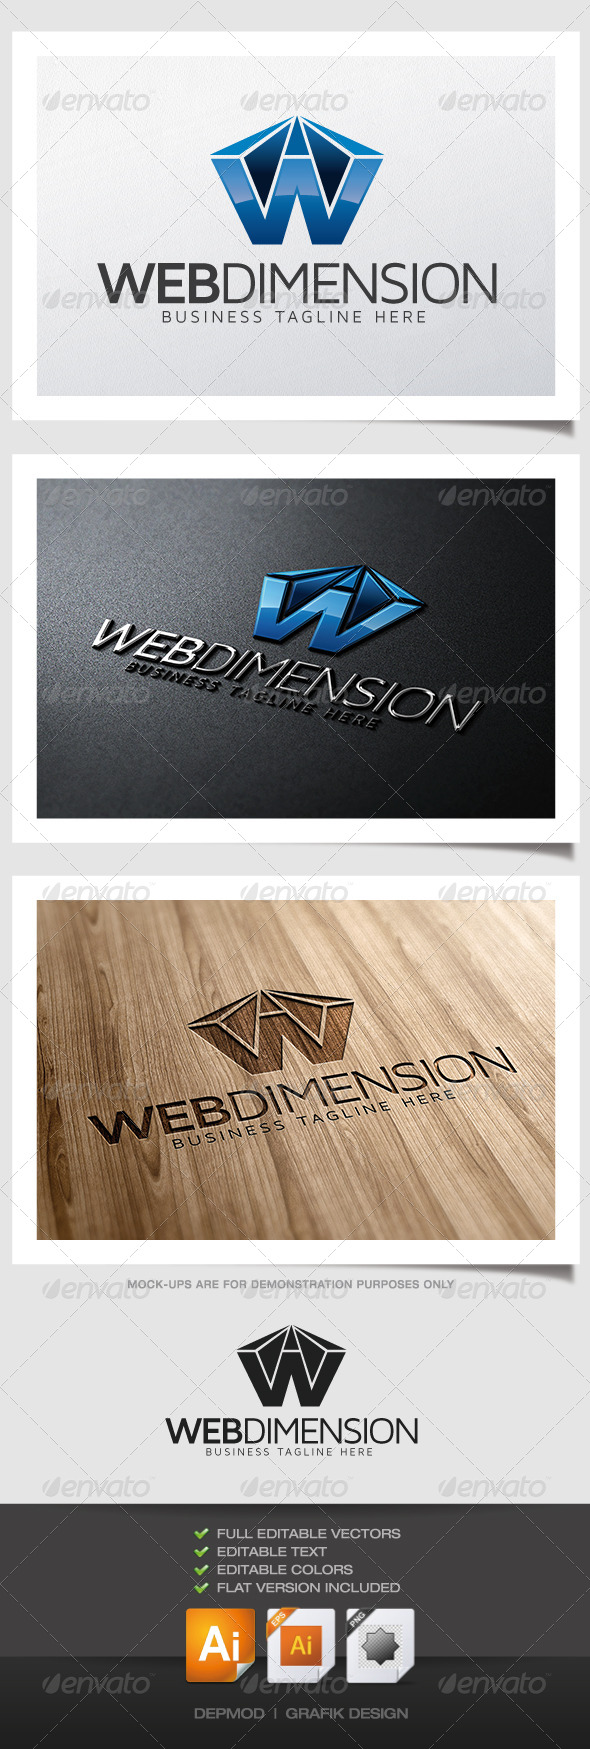 GraphicRiver Web Dimension Logo 4839284